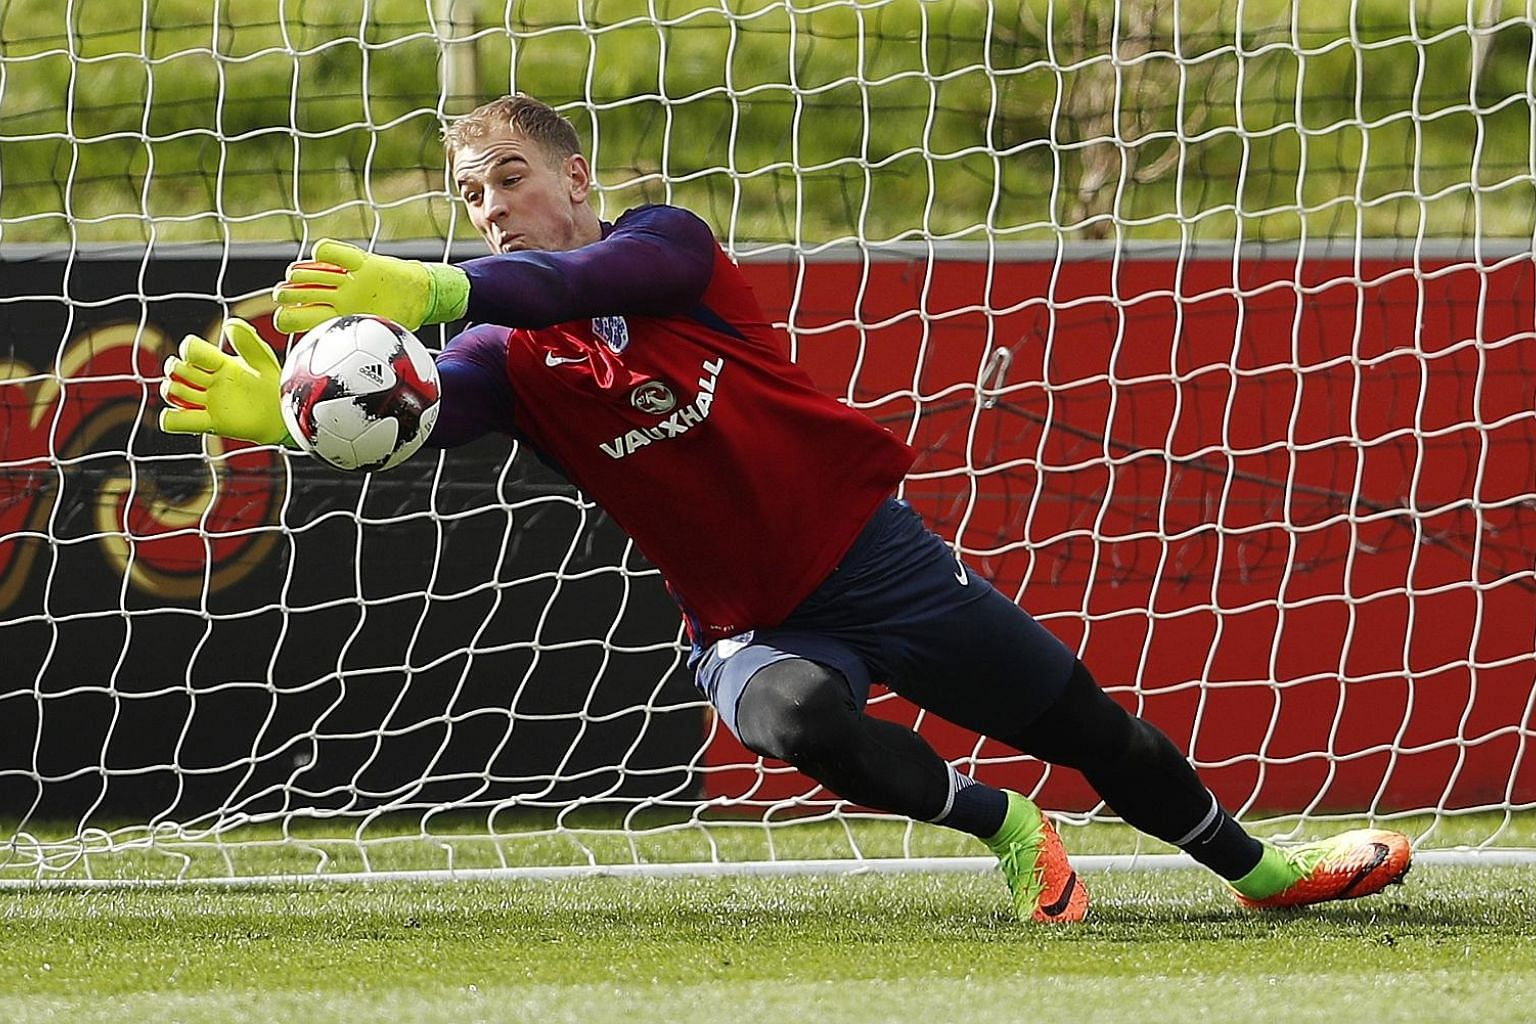 Joe Hart will earn his 70th cap as he captains England against Lithuania, guiding them towards qualifying for Russia 2018. Lithuania are three places and five points behind England.